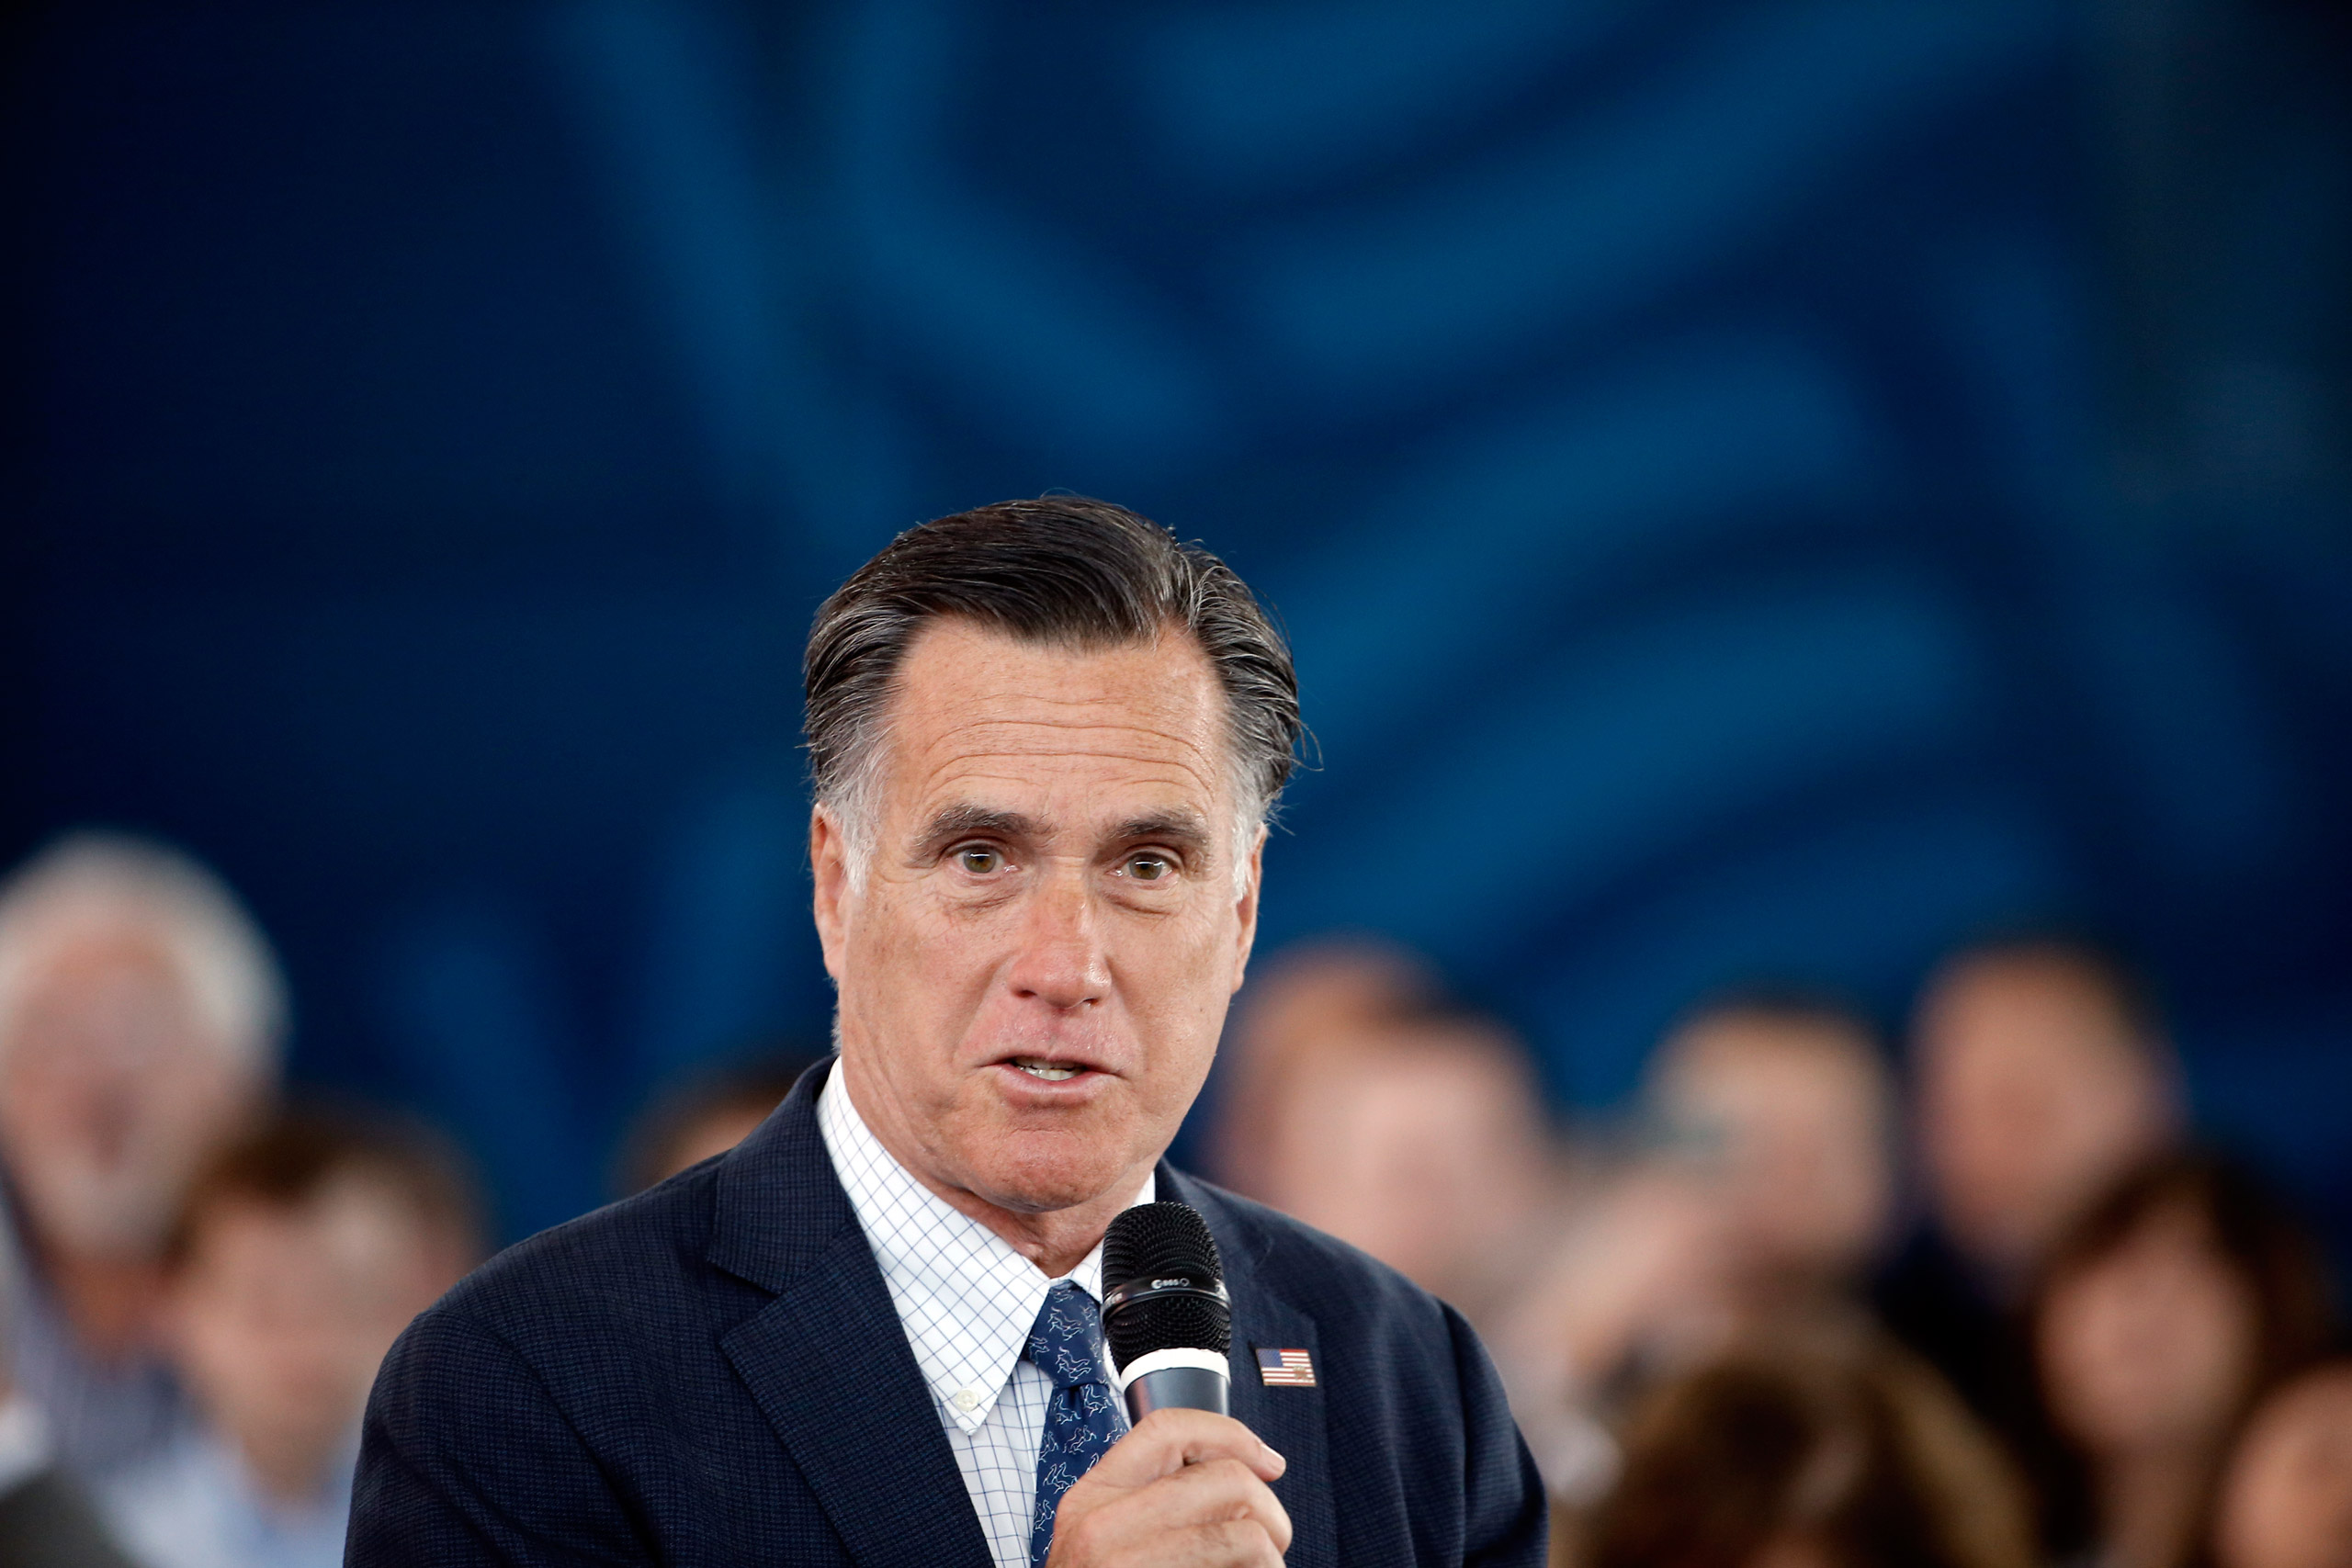 Mitt Romney speaks during Republican presidential candidate, Ohio Gov. John Kasich's campaign stop at the MAPS Air Museum in North Canton, Ohio, on Mar. 14, 2016.